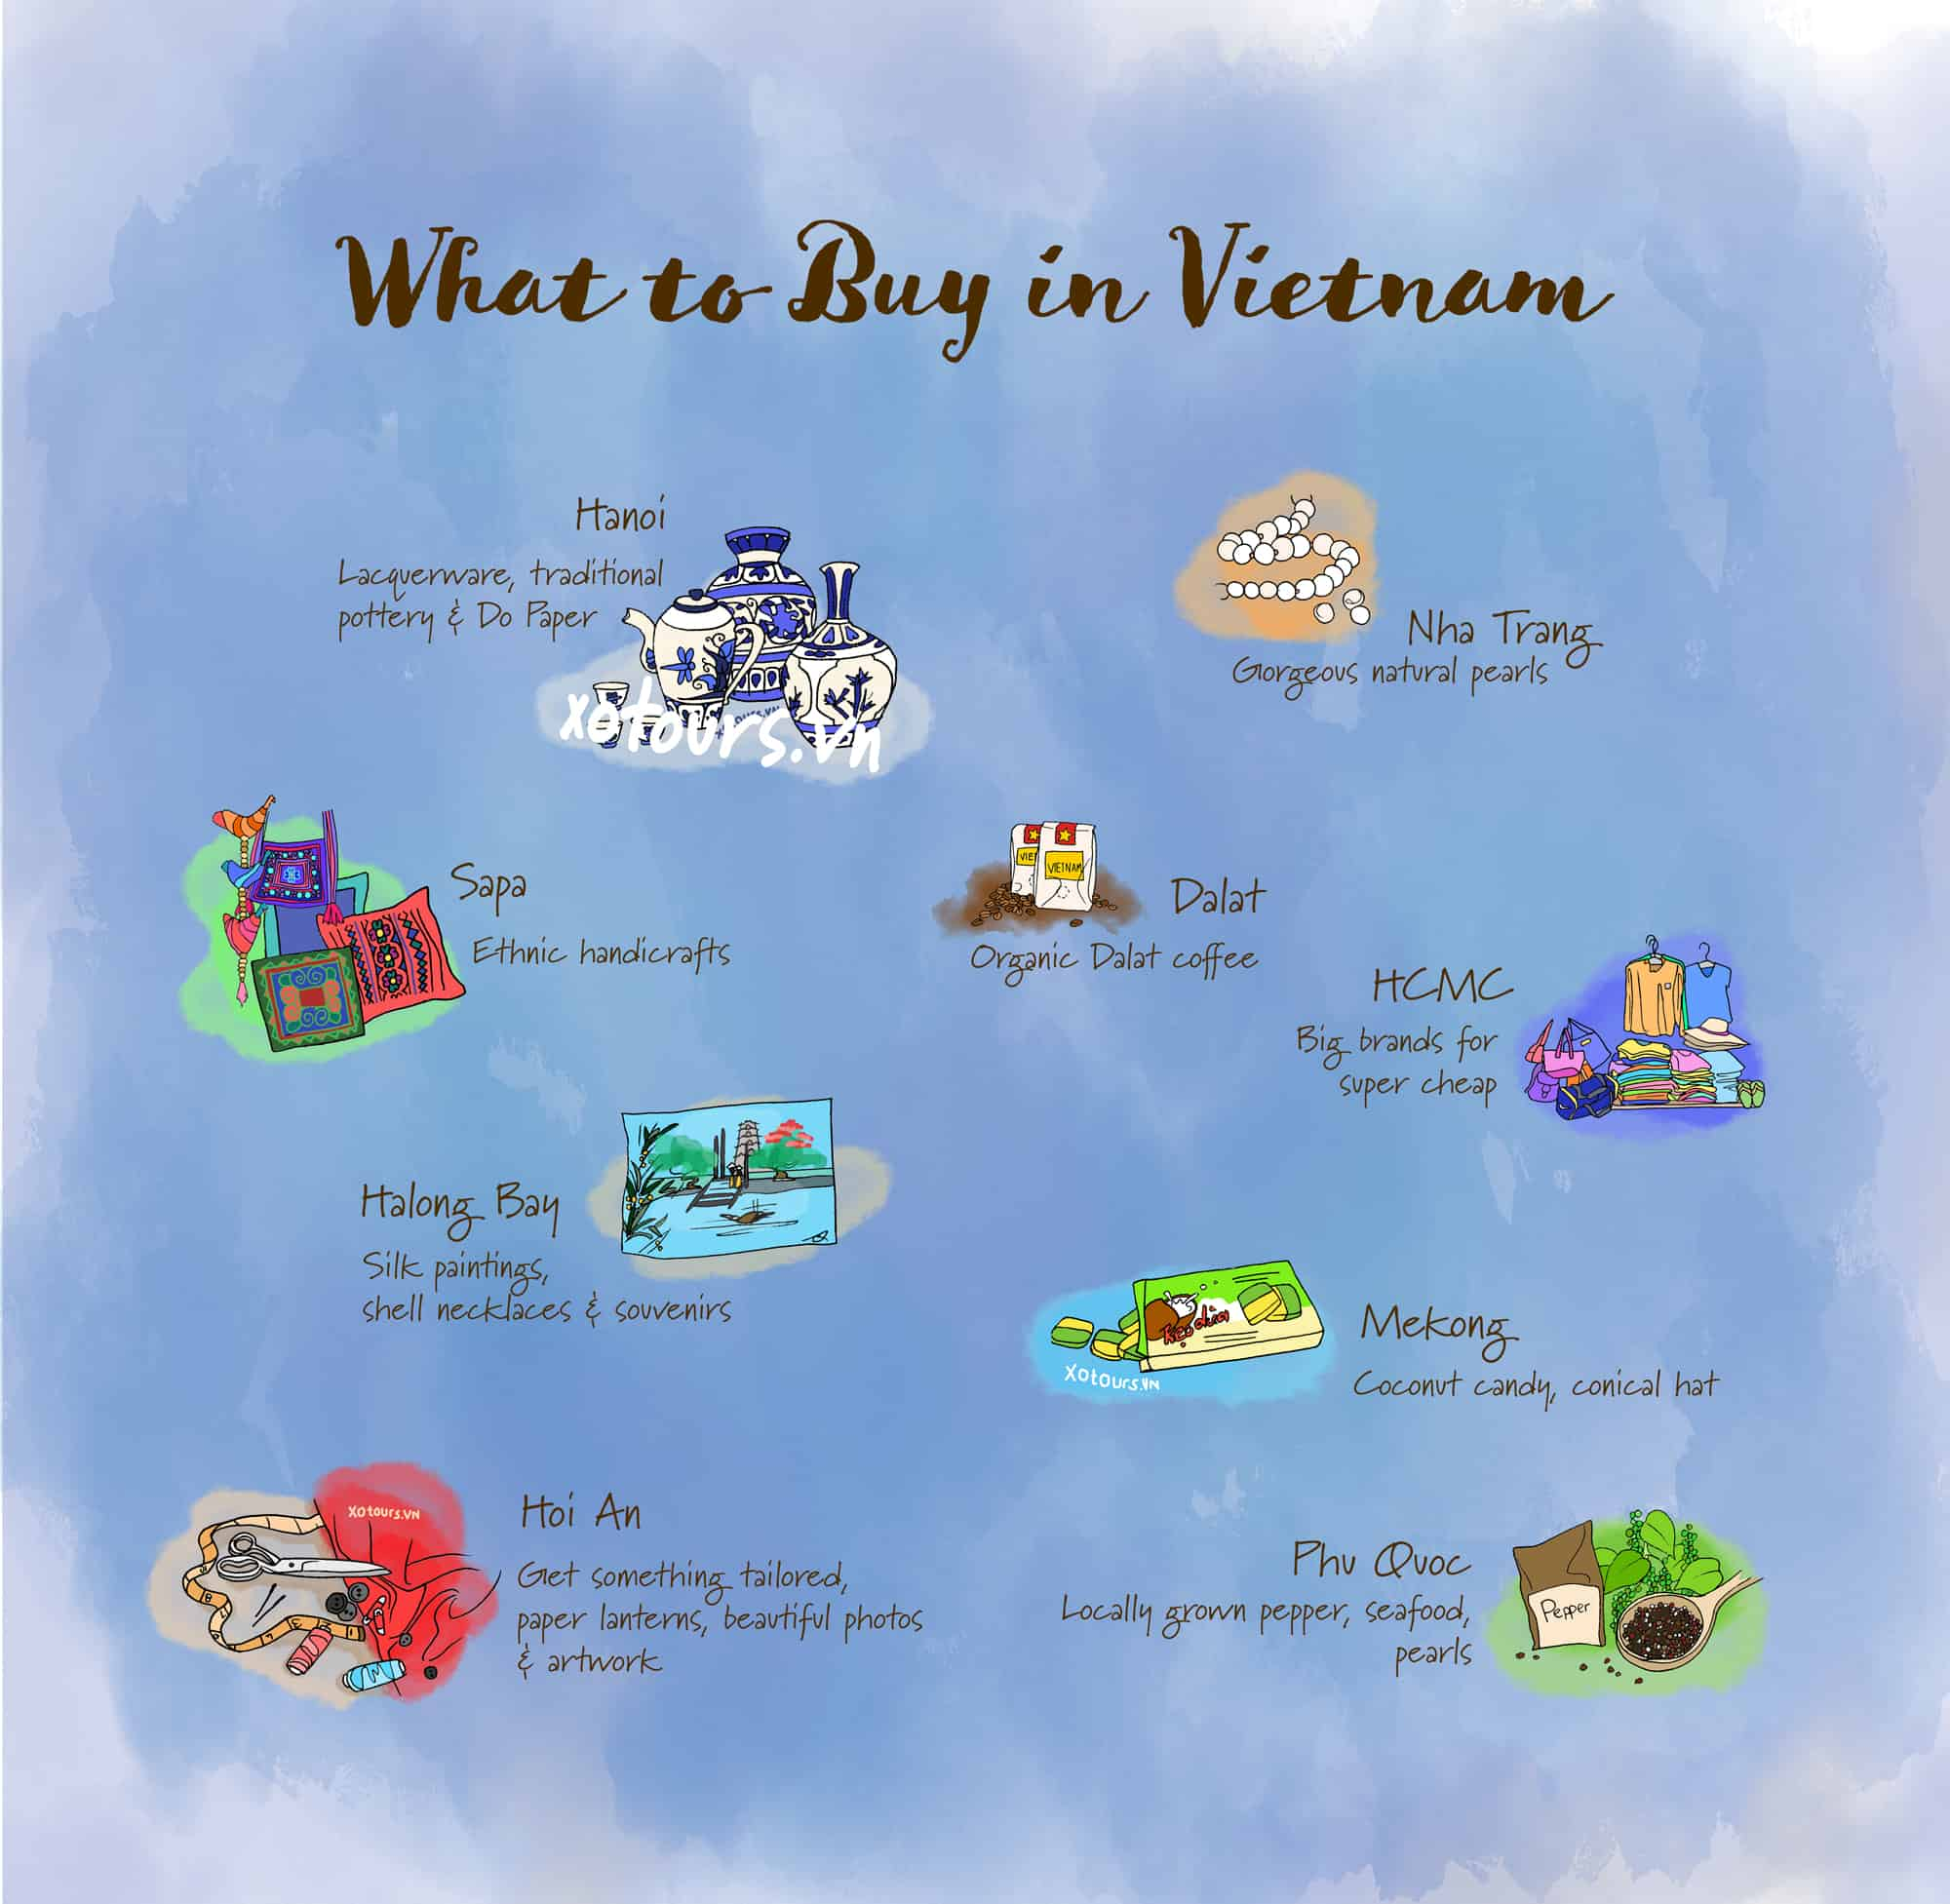 what to buy in Vietnam